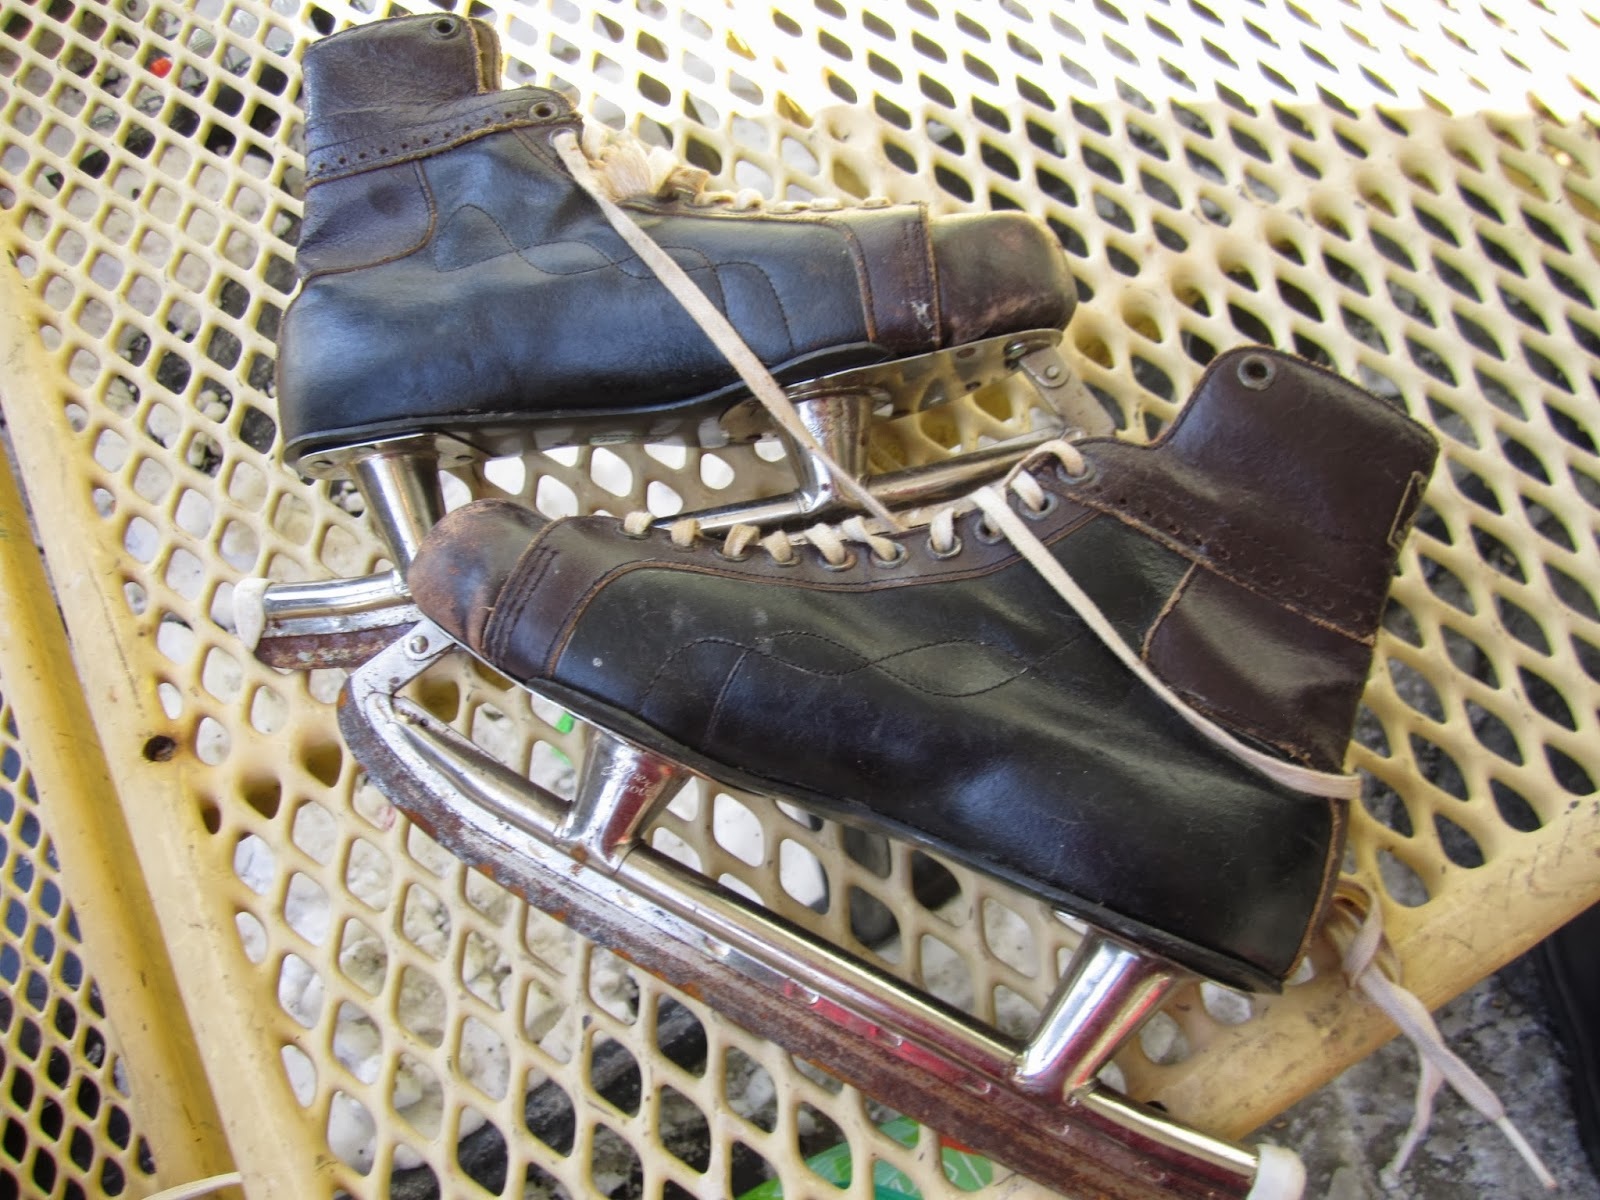 A pair of black leather ice skates that look very old